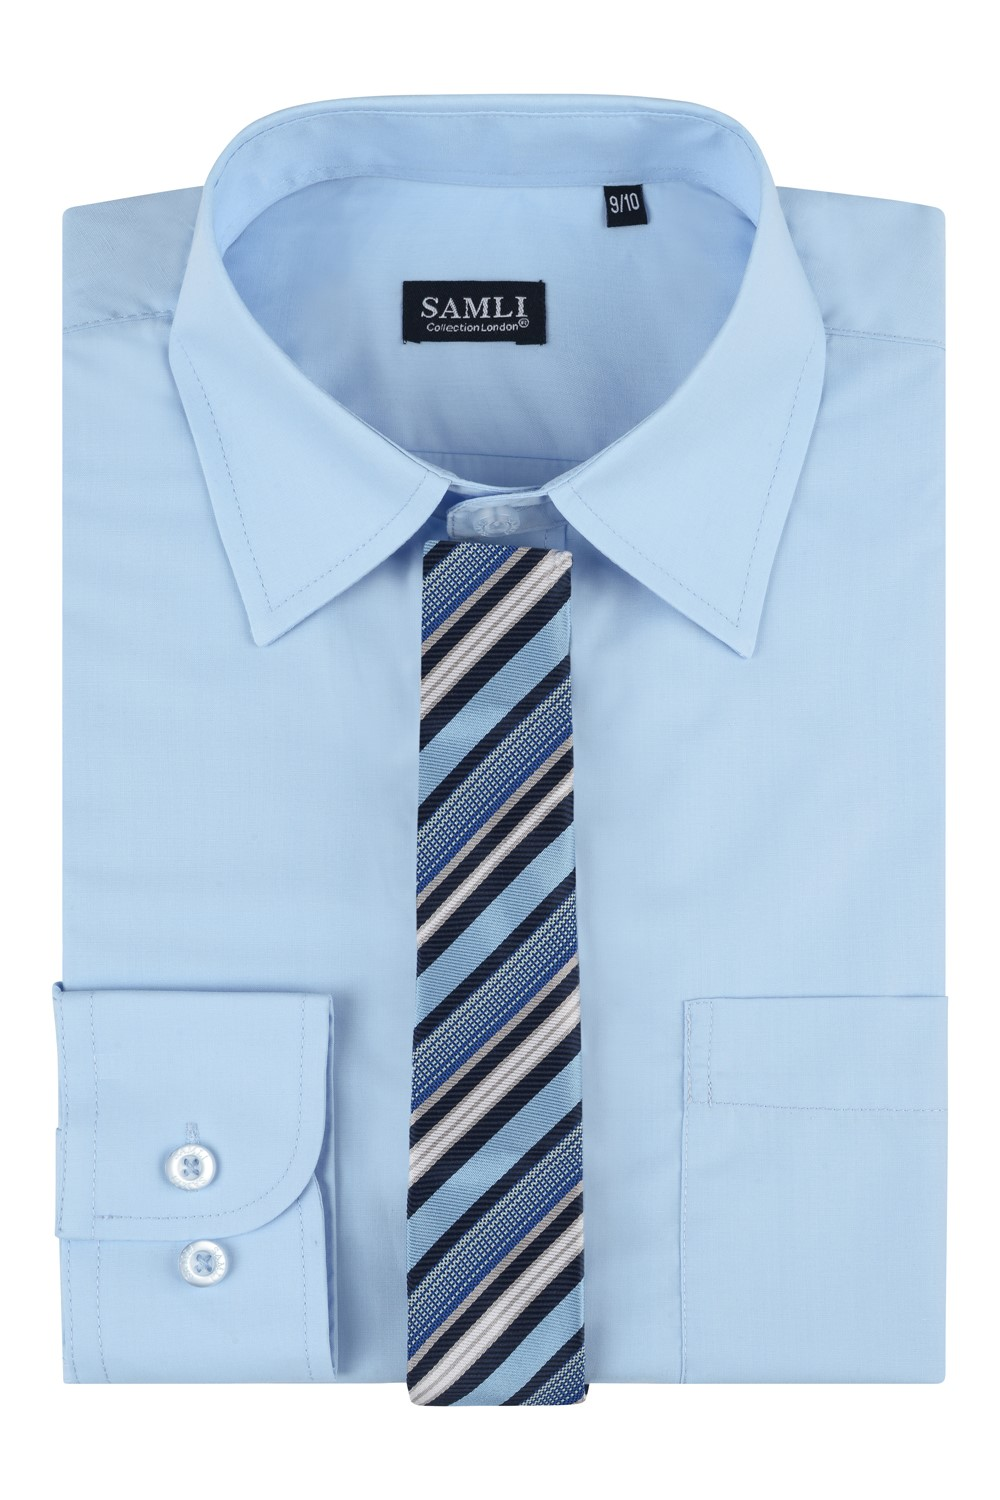 boxed shirt and tie set in glacier